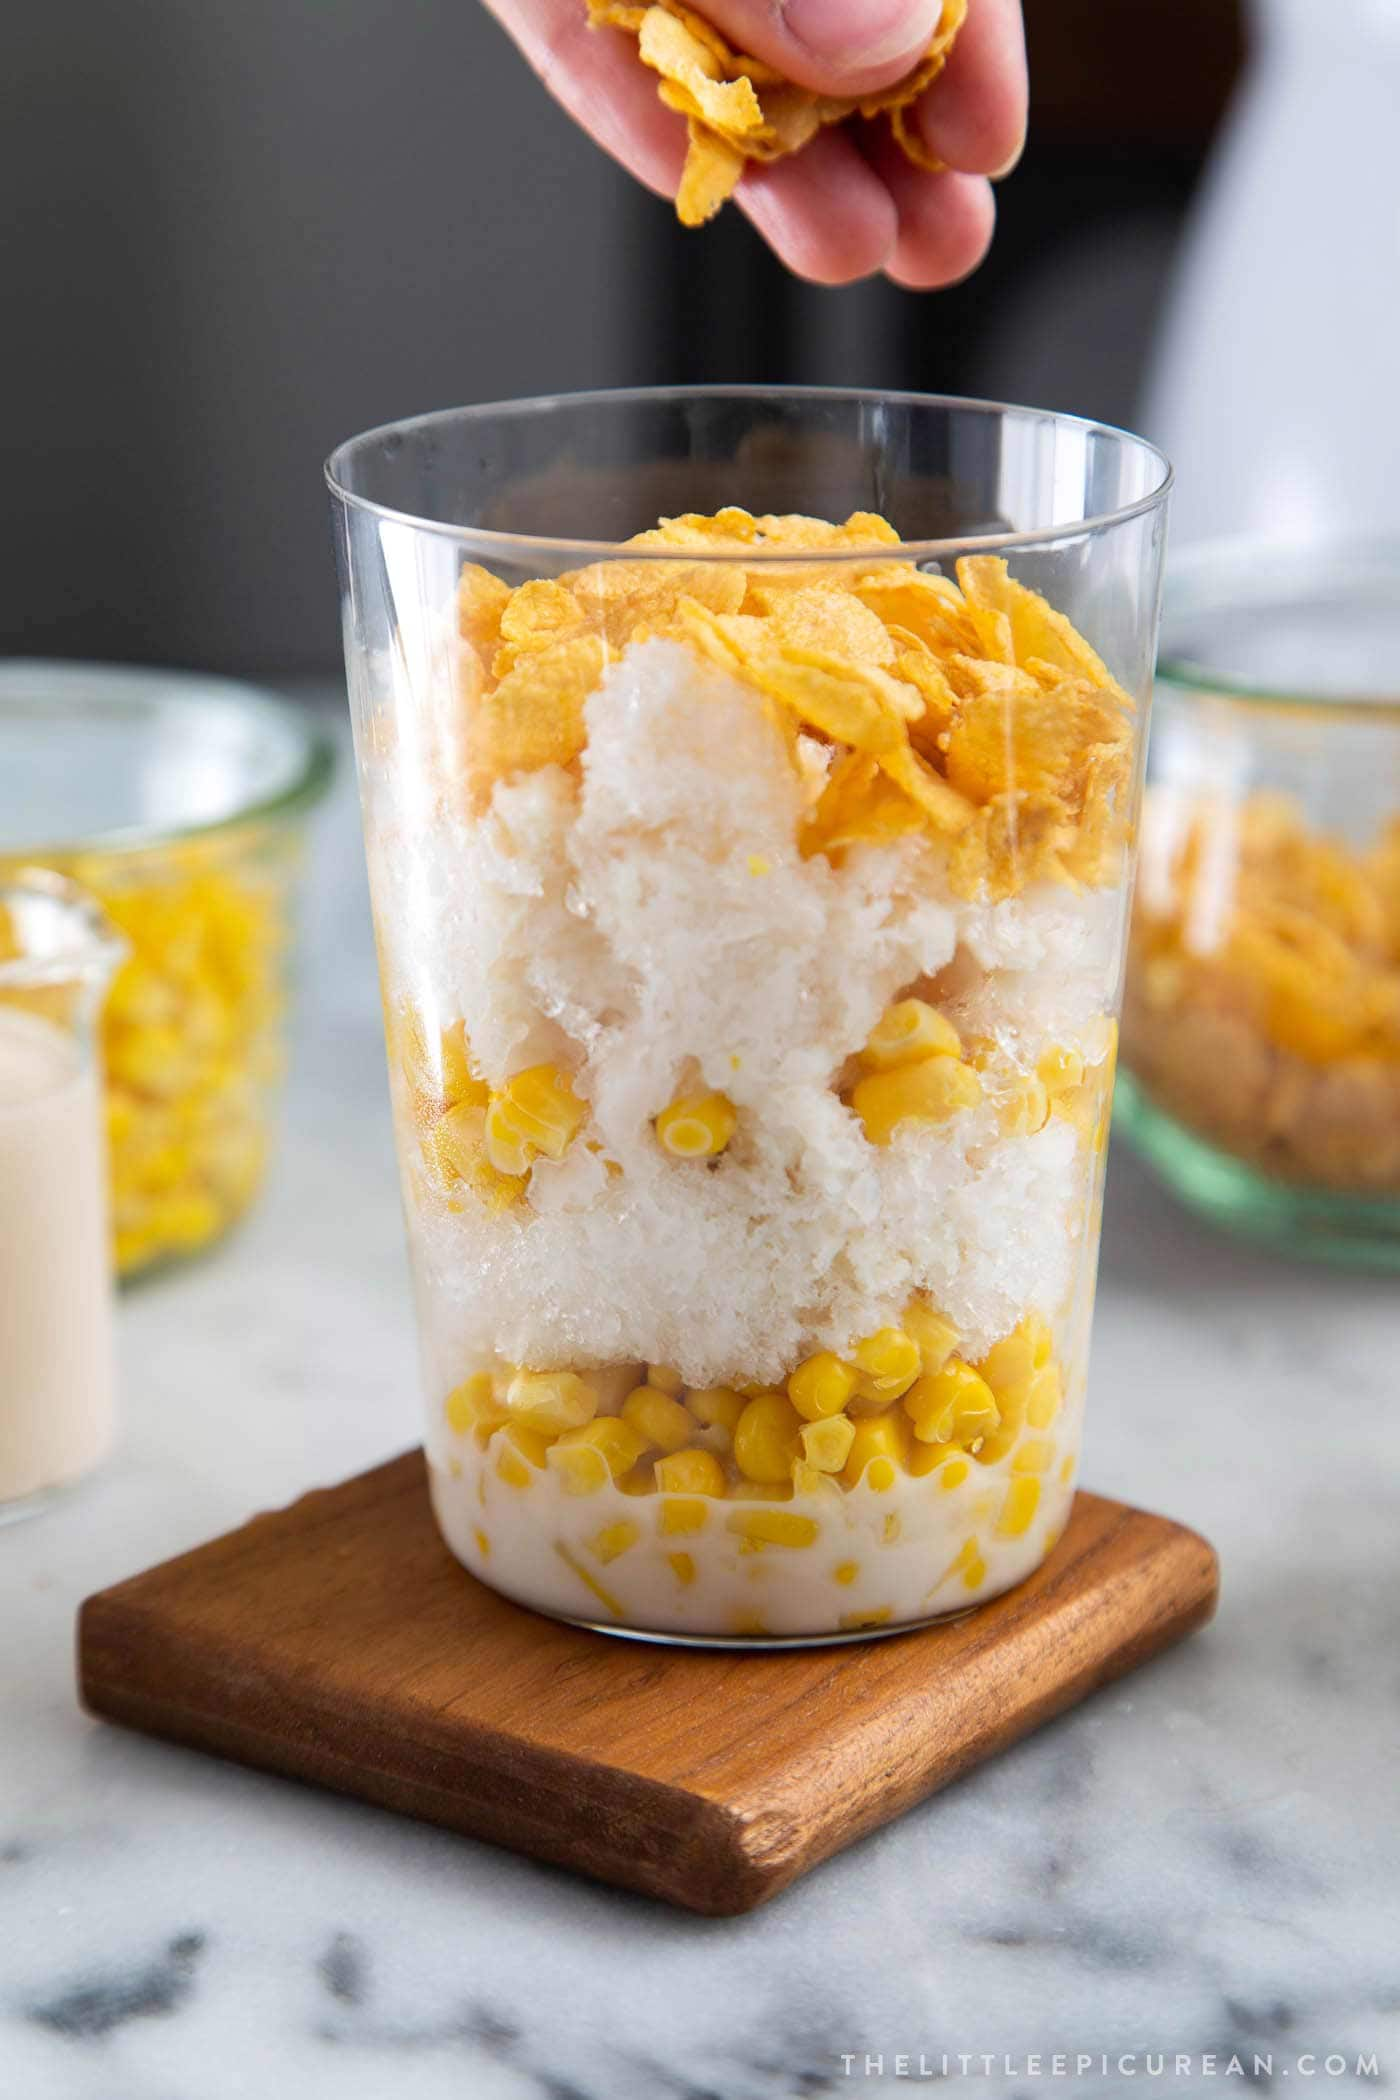 How to make Filipino Mais Con Yelo with homemade corn ice cream